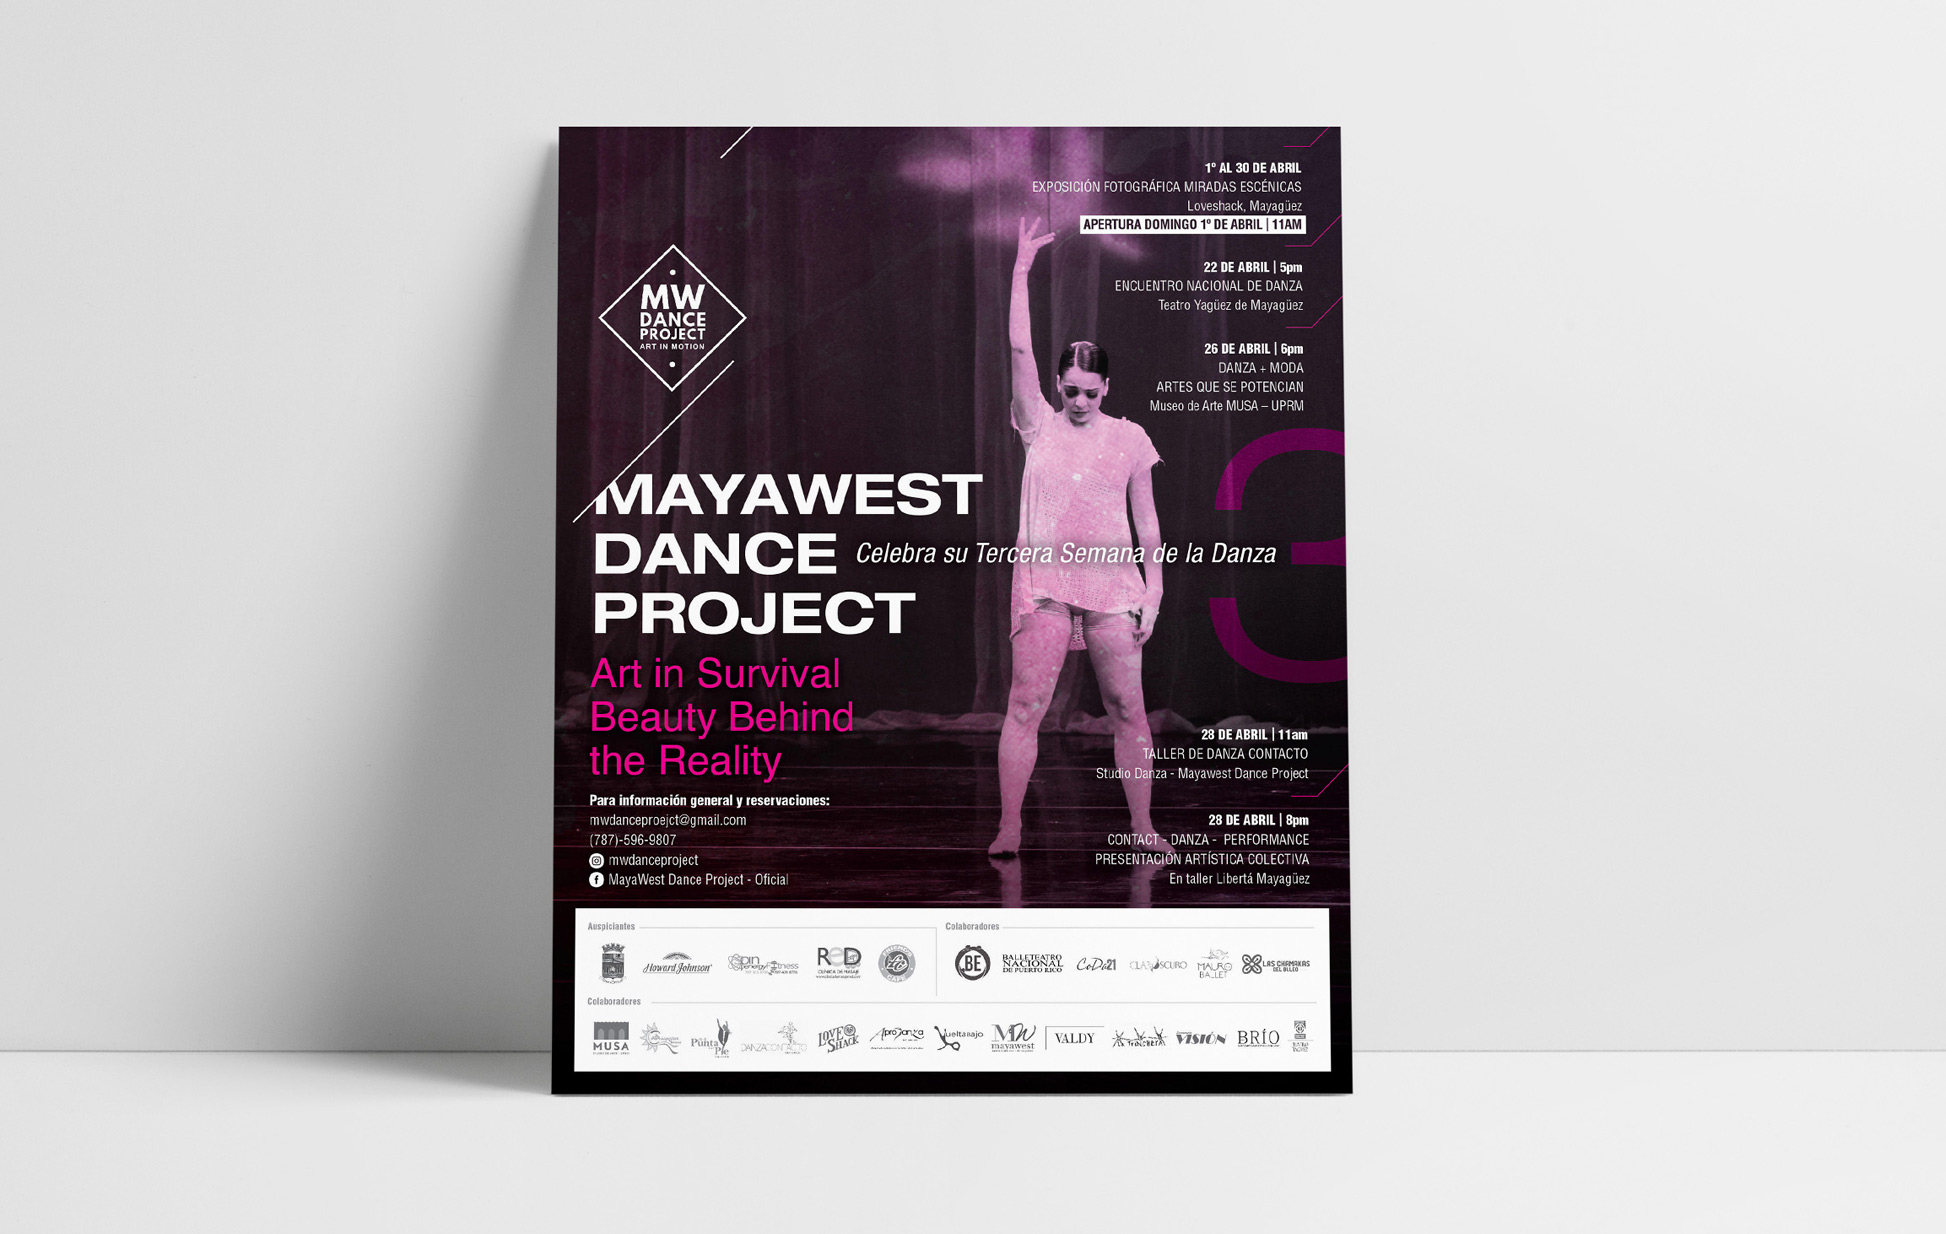 mayawest dance proyect